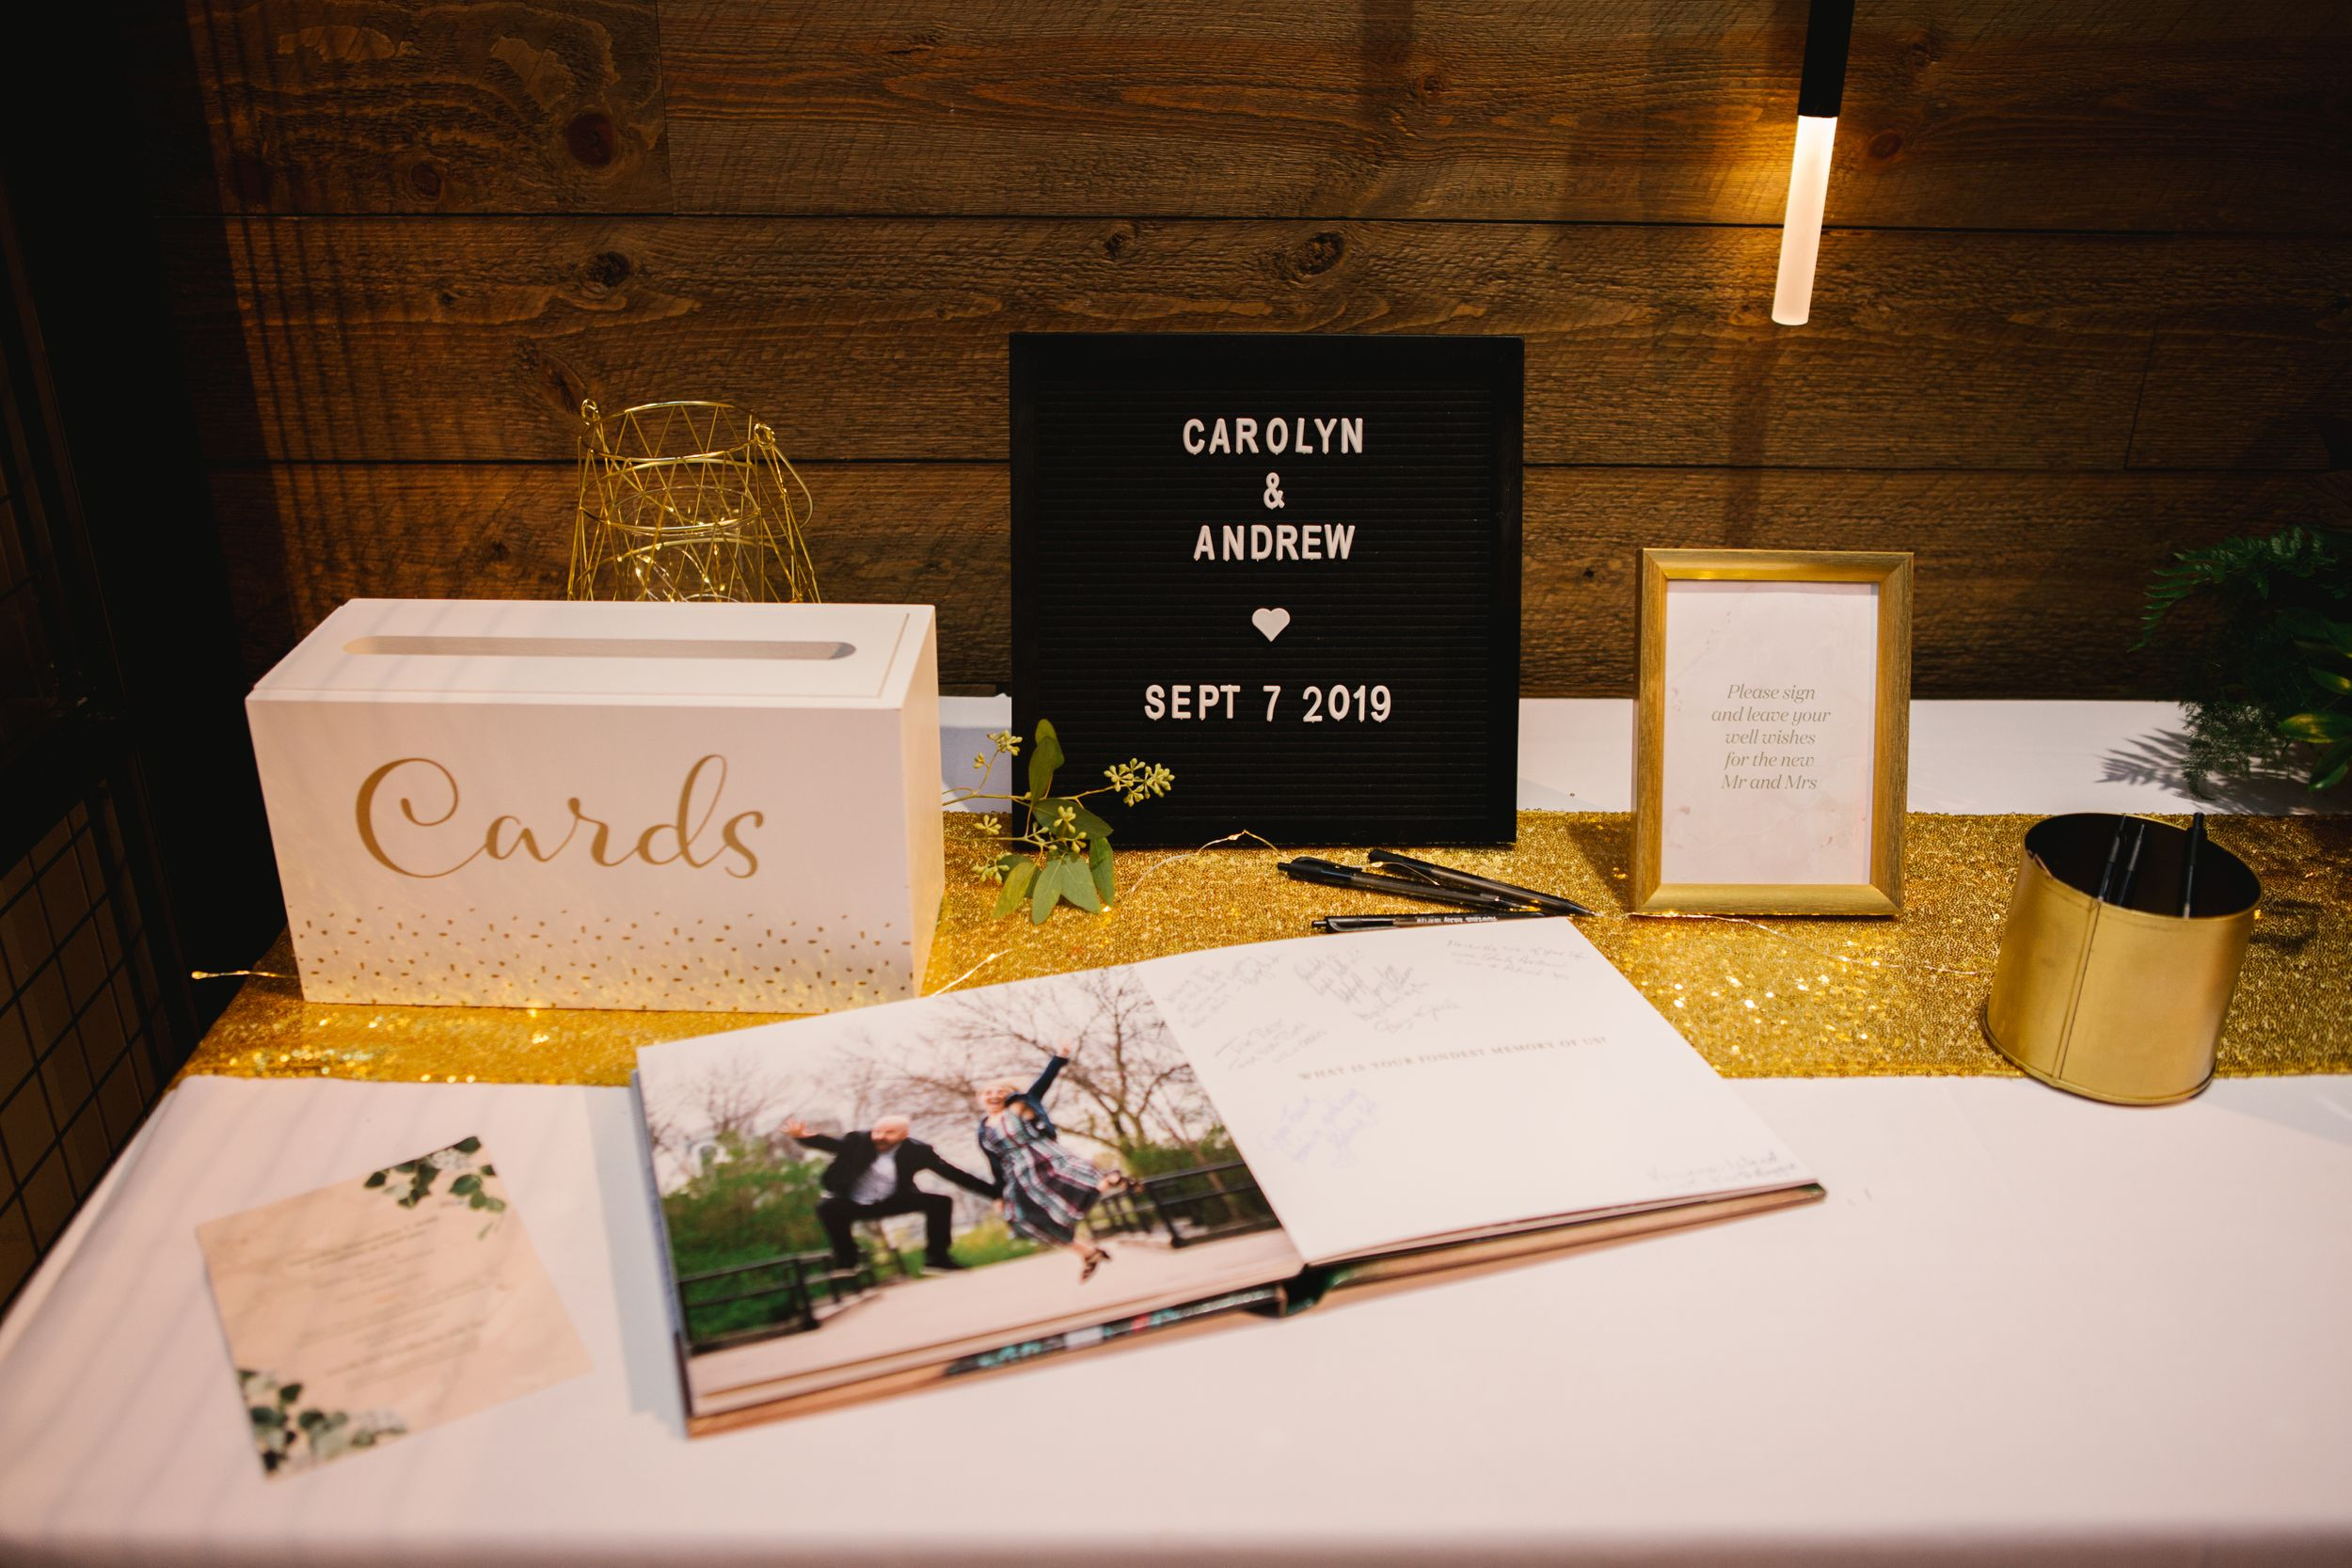 cards table with black felt sign and guest signing book with gold accents wedding